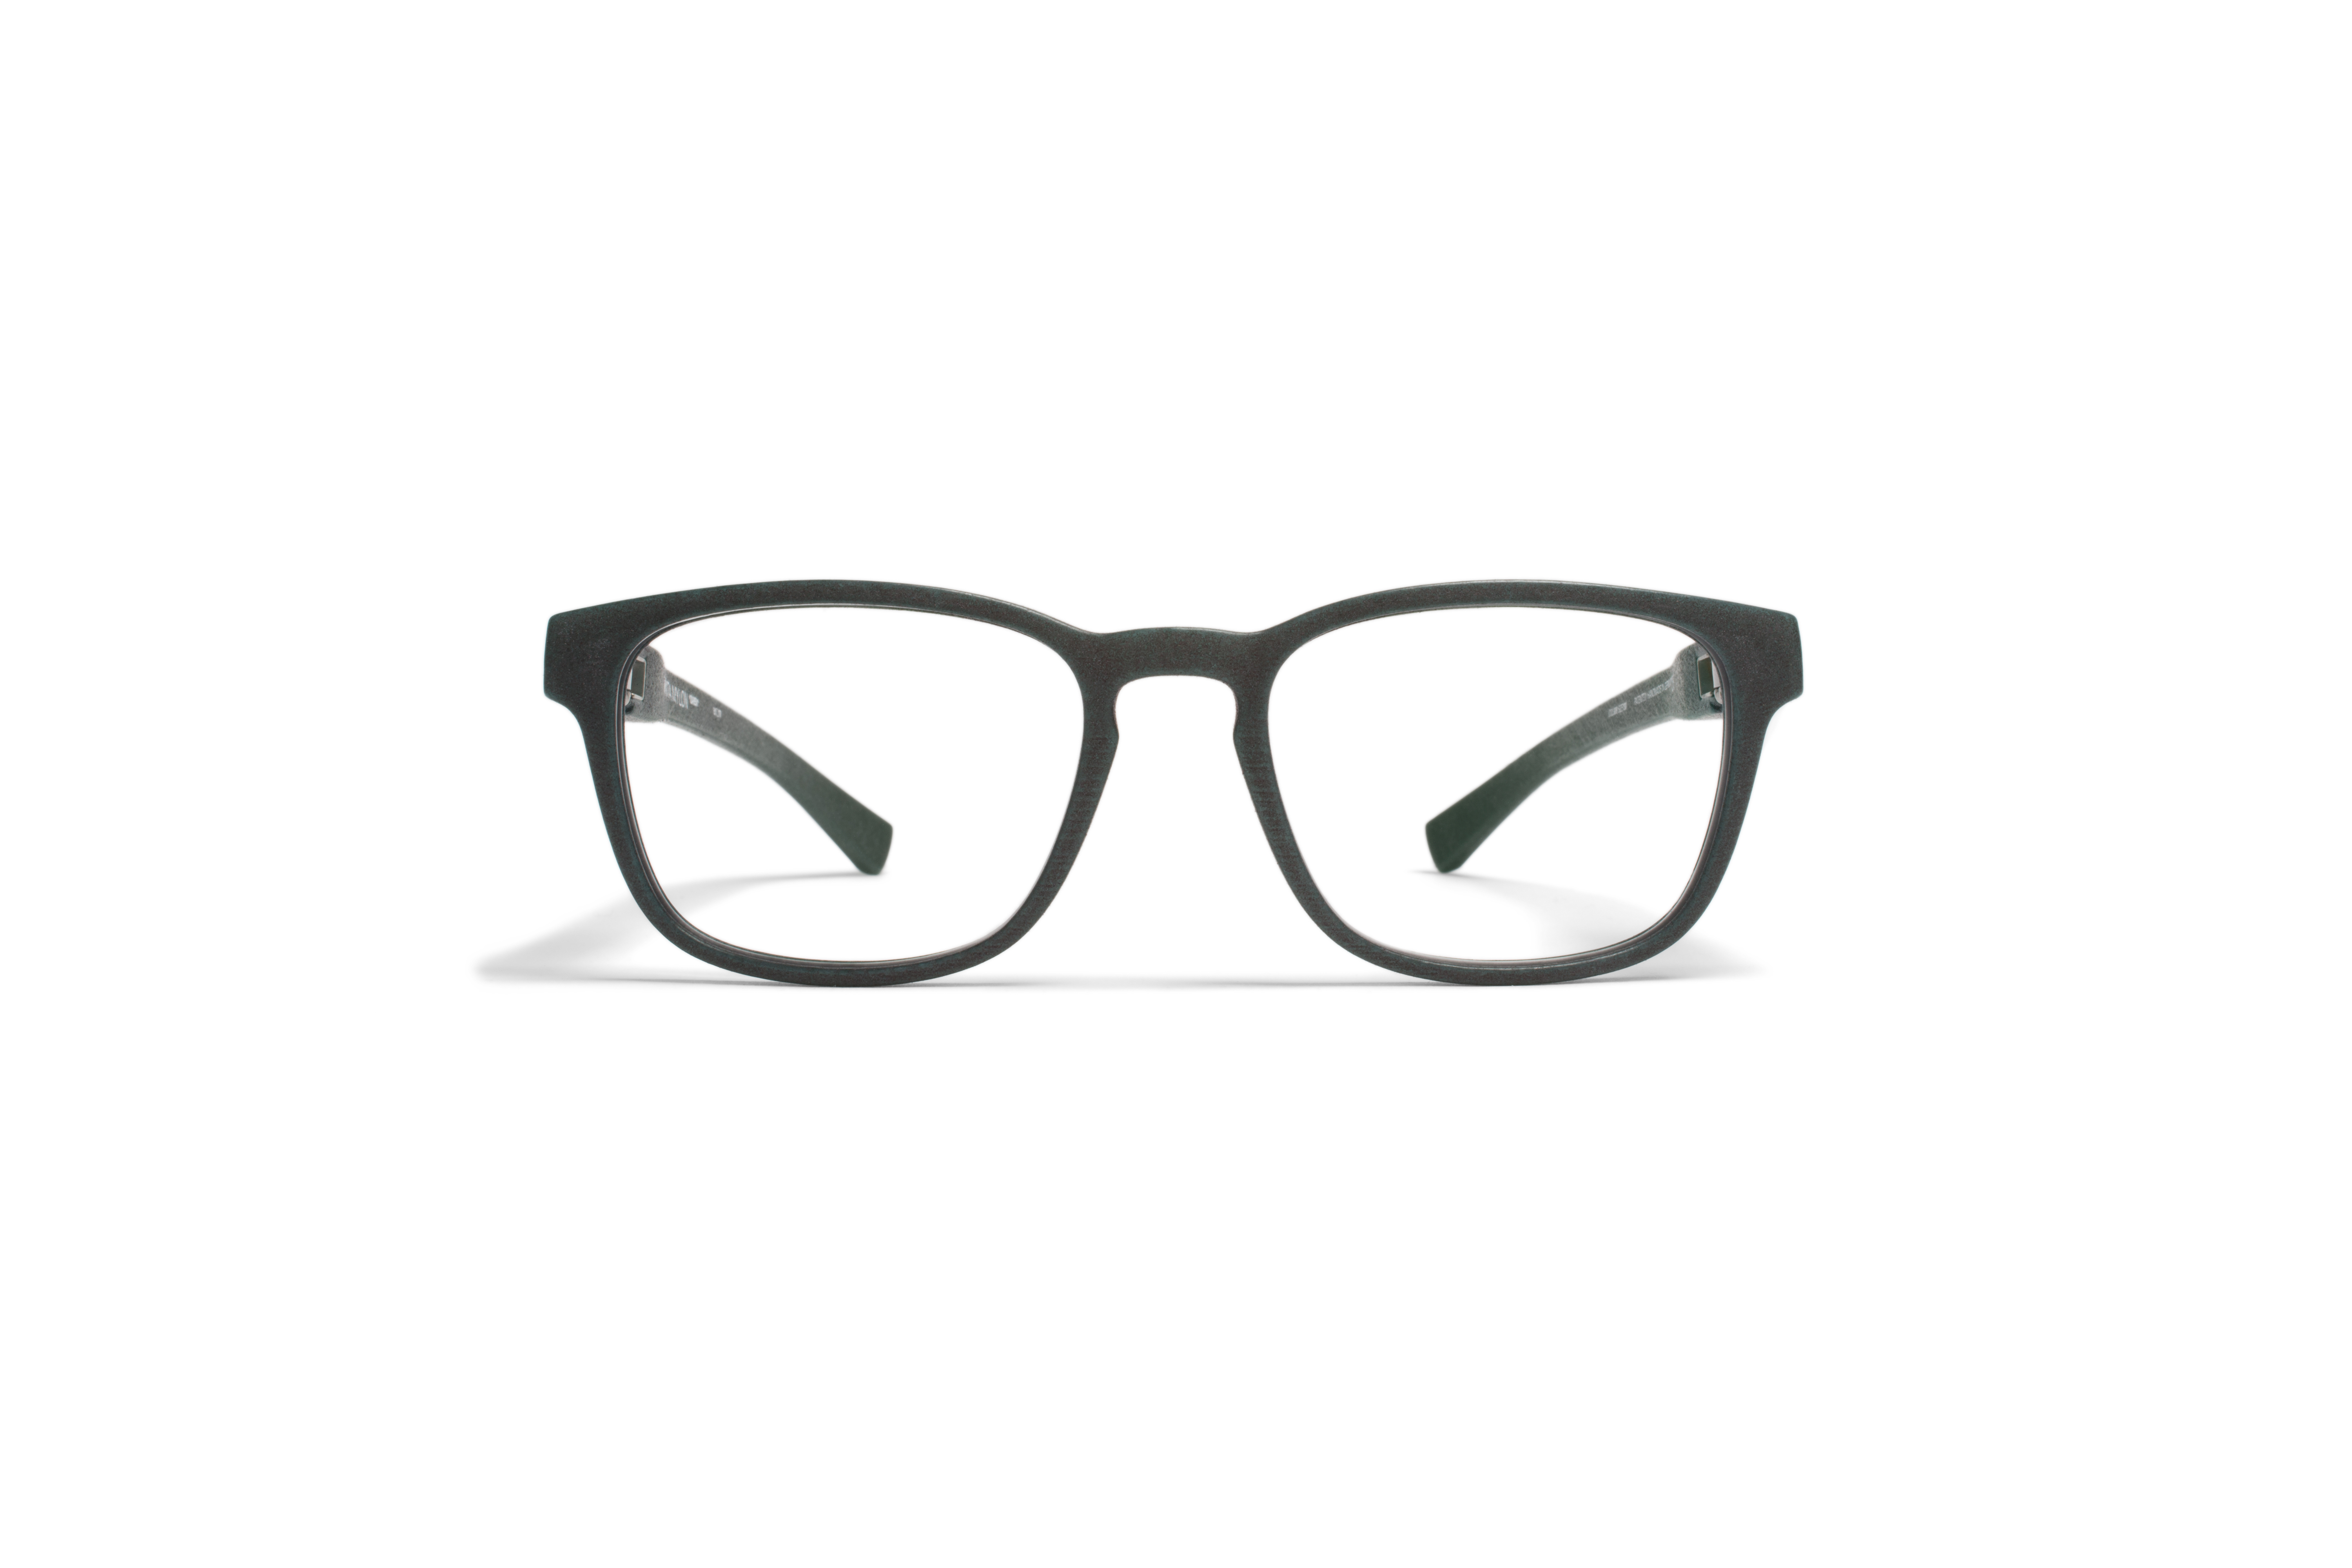 Mykita Mylon Rx Zaren Md8 Storm Grey Clear 350203155313896c4d93